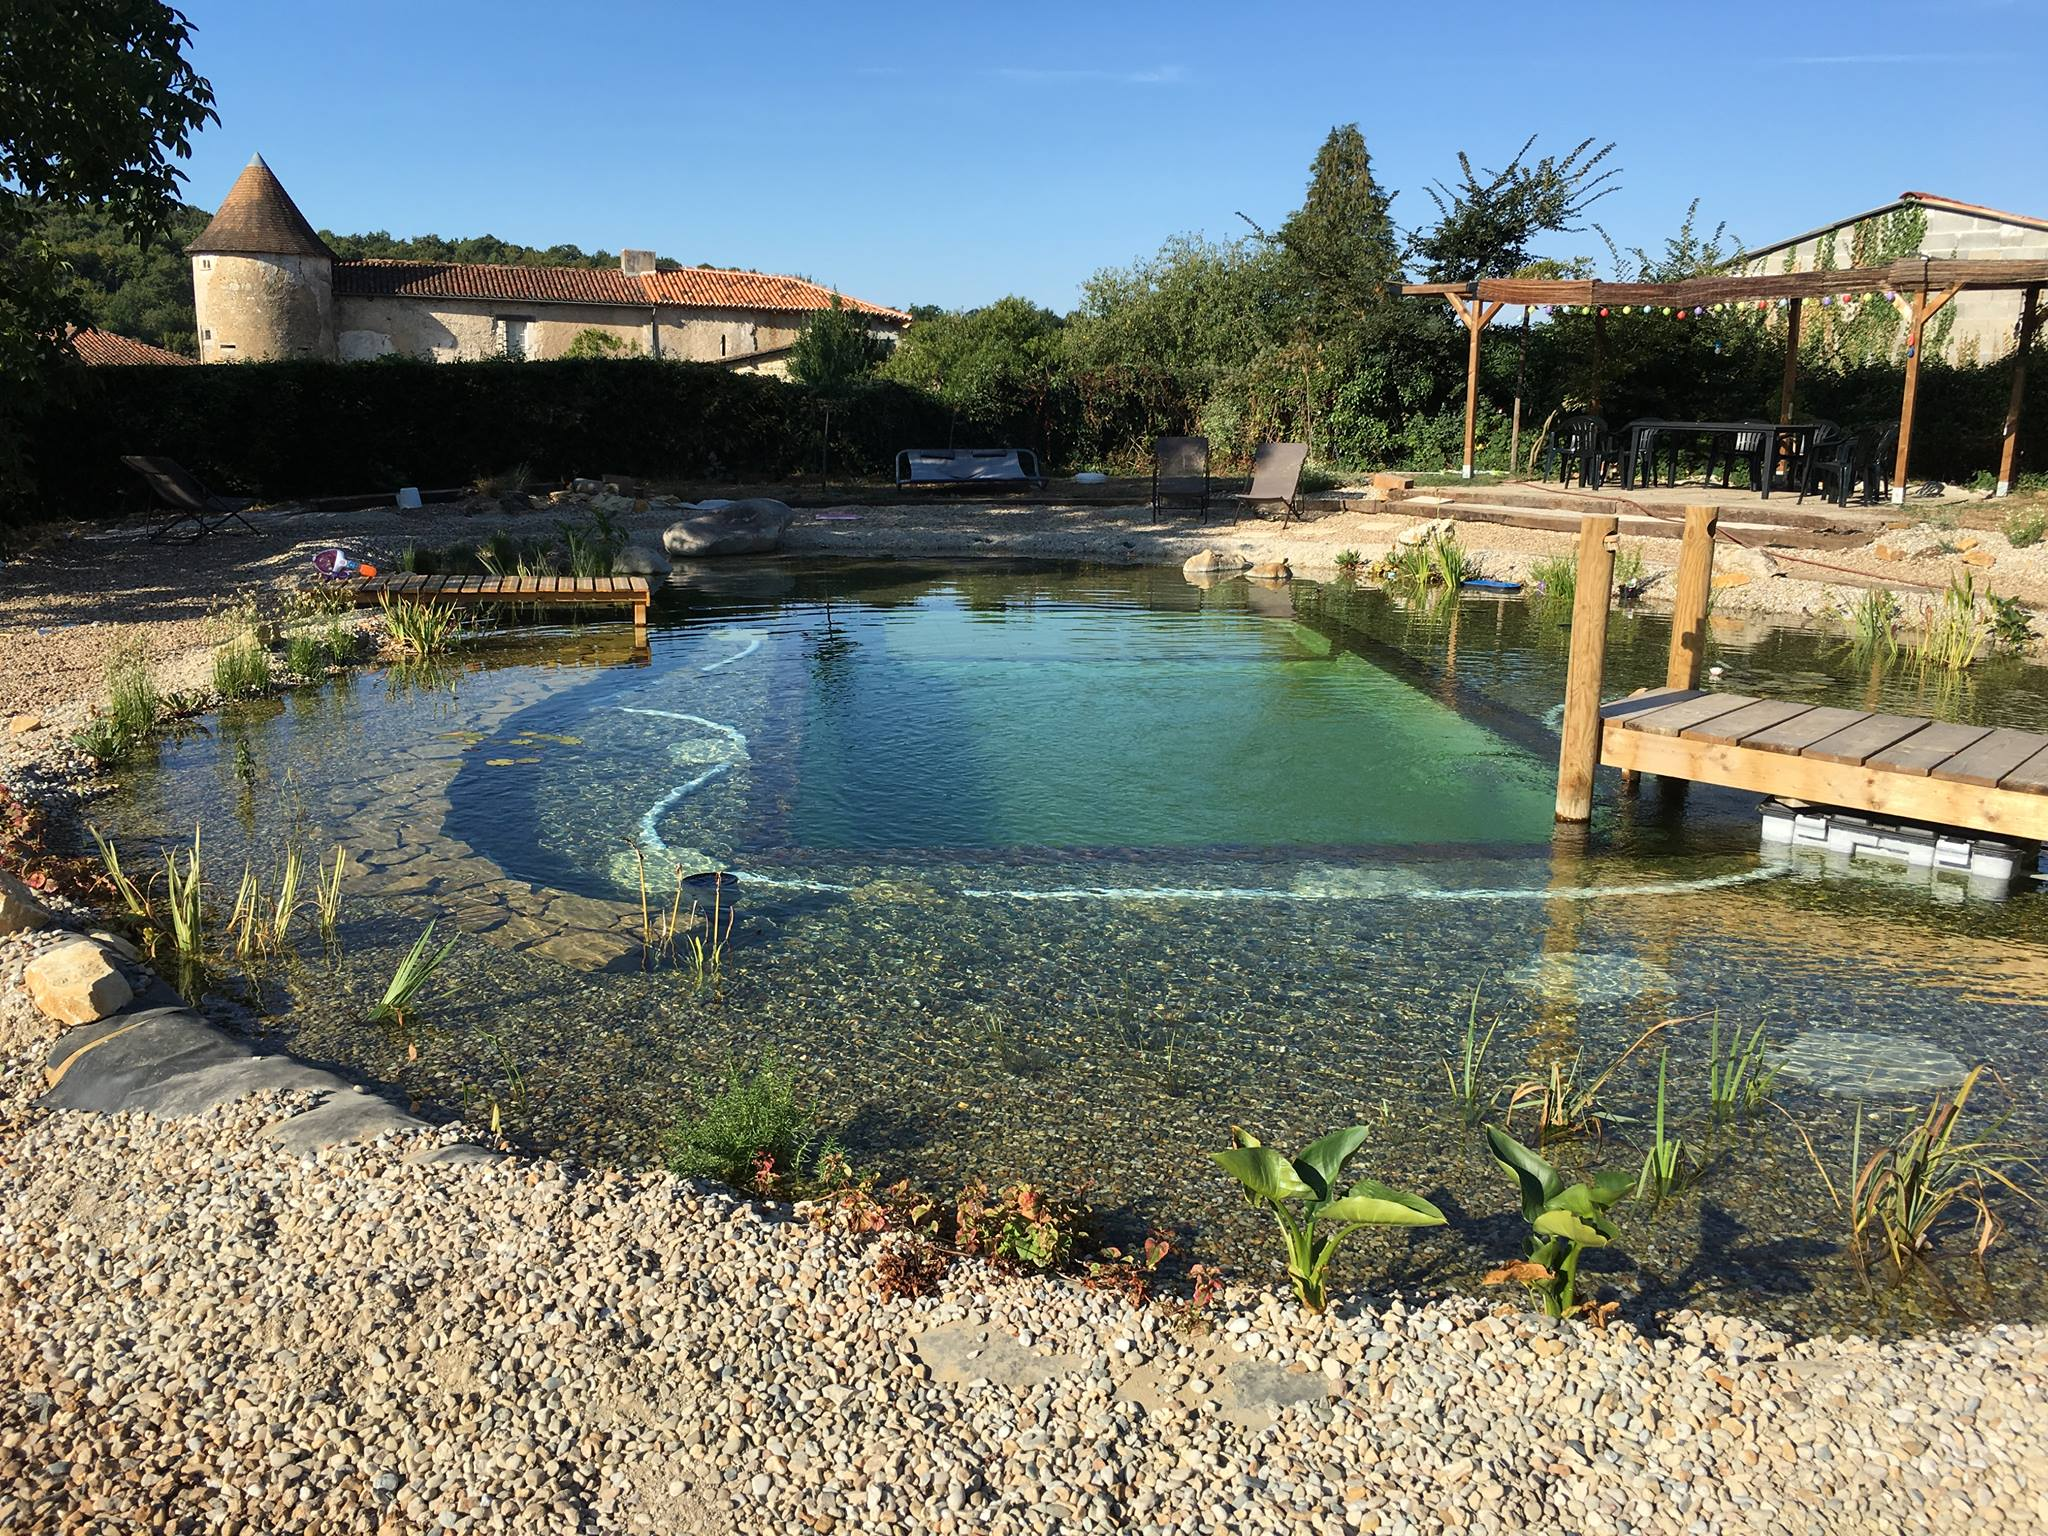 How To Build Your Own Natural Swimming Pond Your